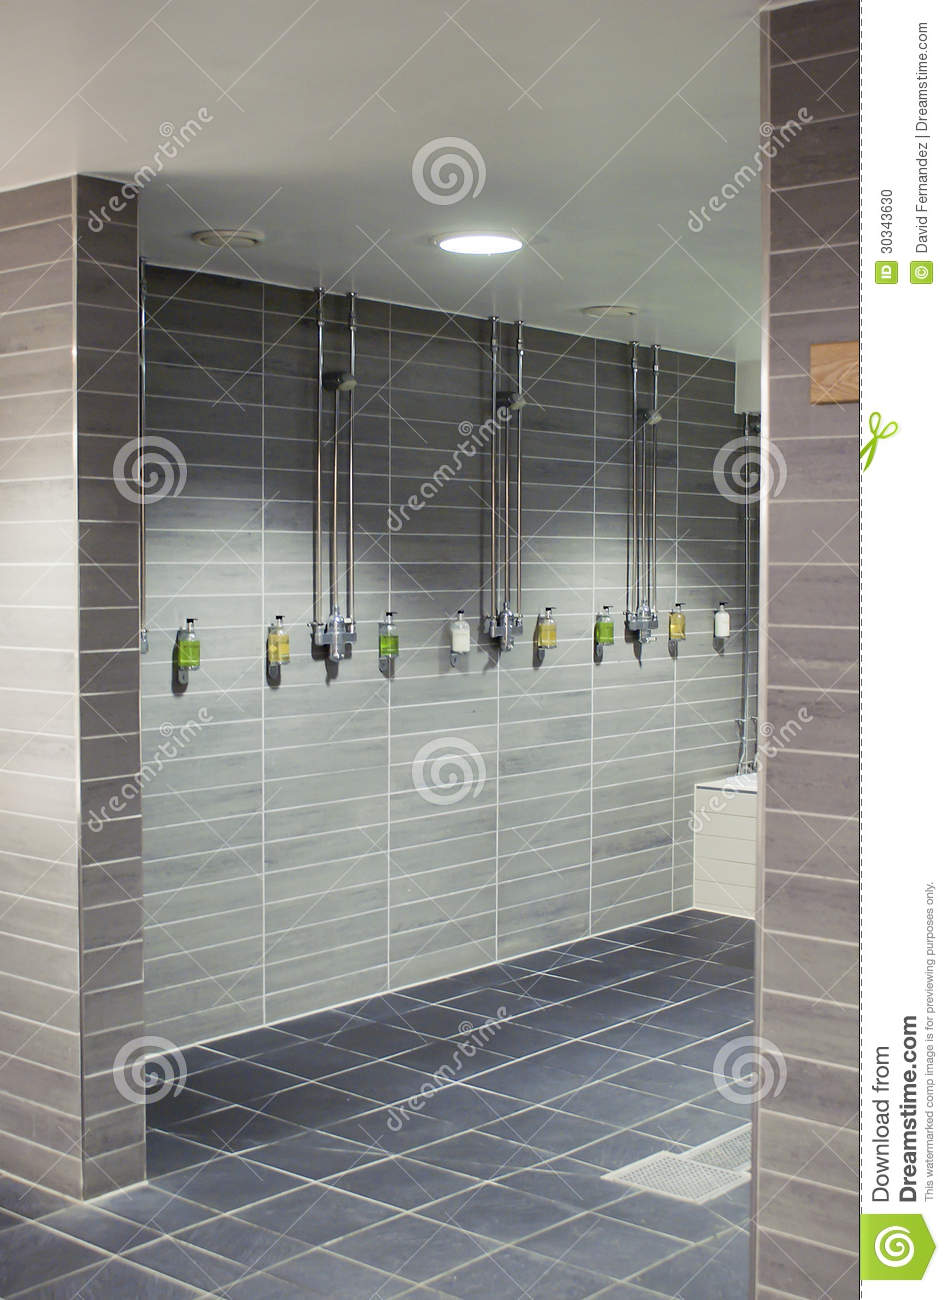 Stylish Shower Room Stock Photo Image 30343630